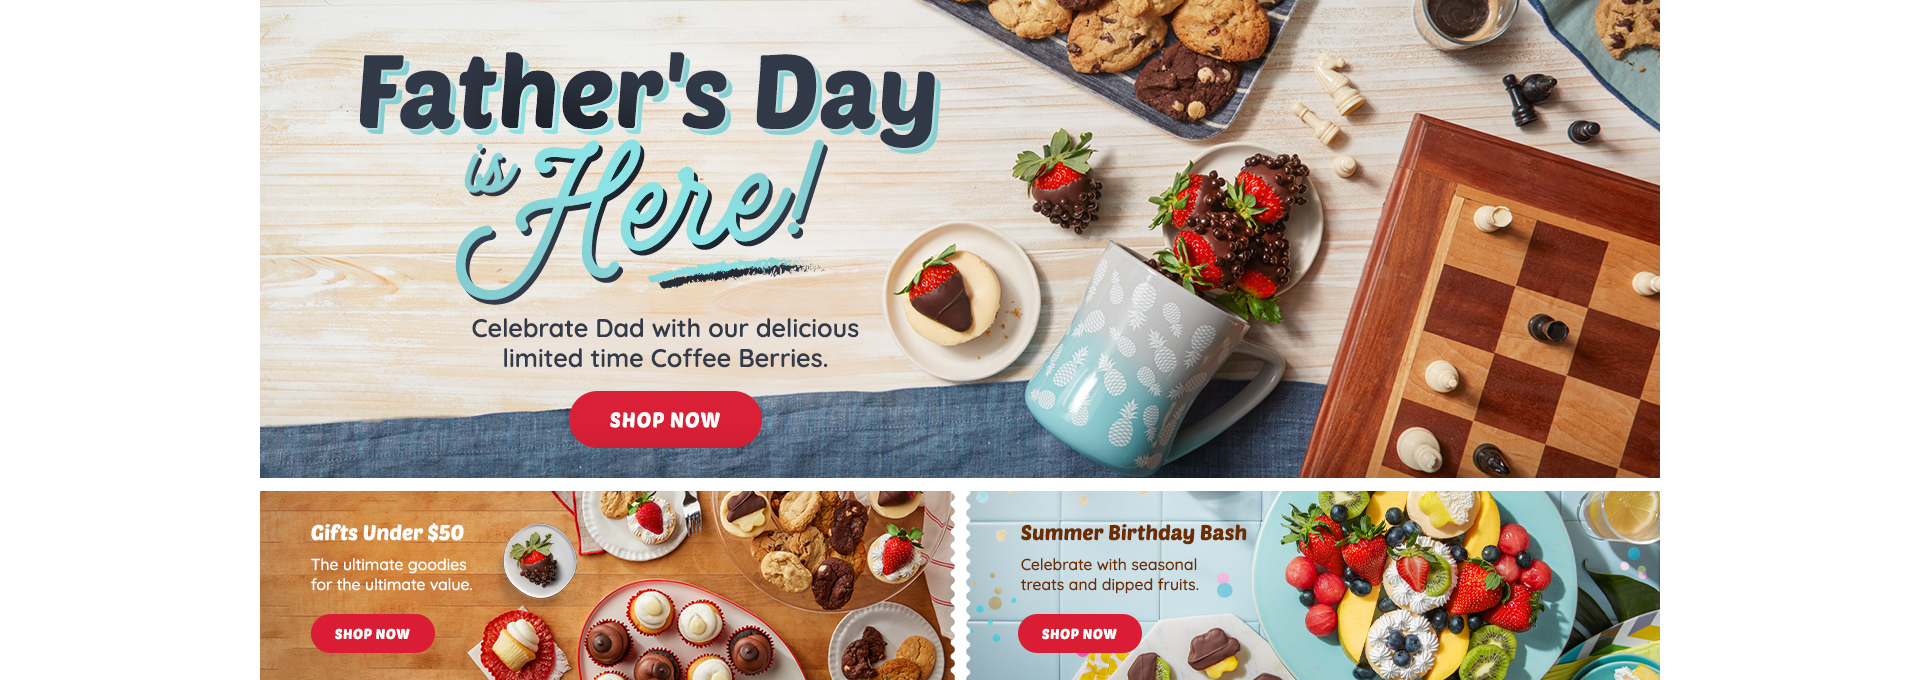 HP DT Father's Day, Gifts Under $50, Birthday